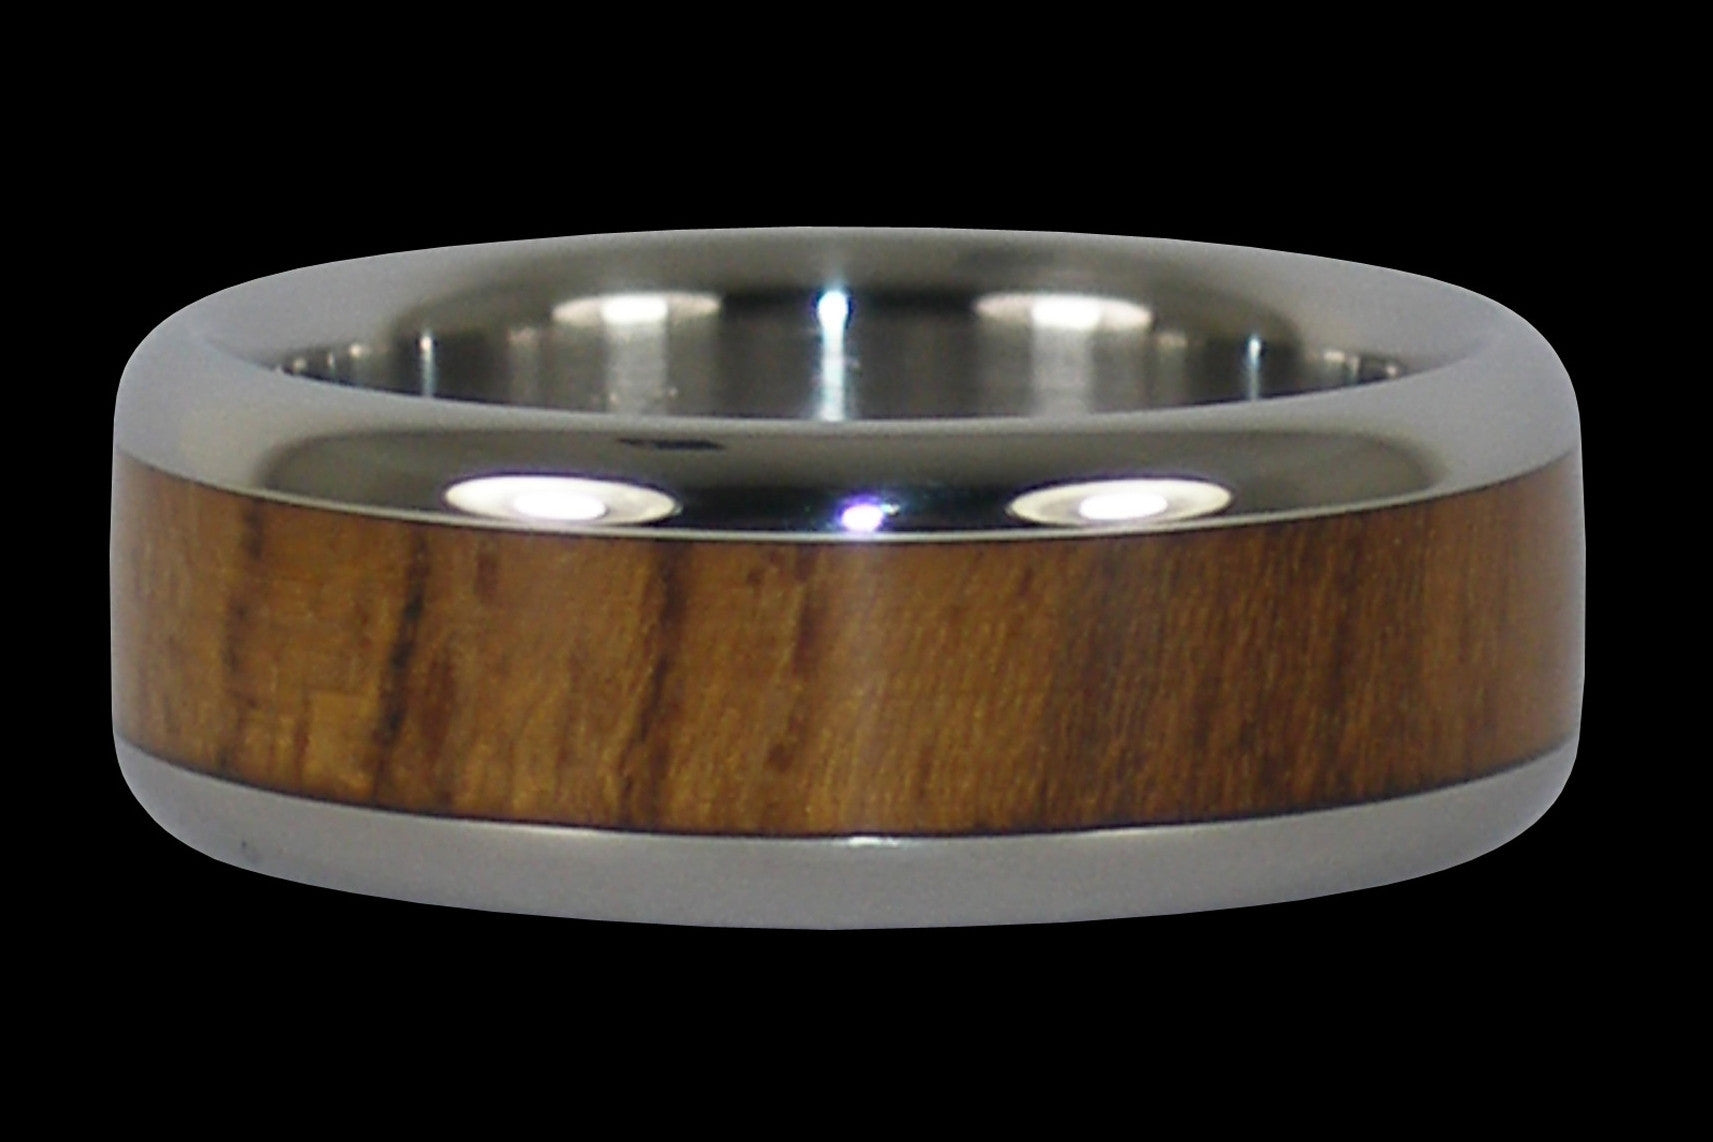 duality and products ring rings s wood stonewashed stonewash men w titanium band wedding teak chamfer finish mens